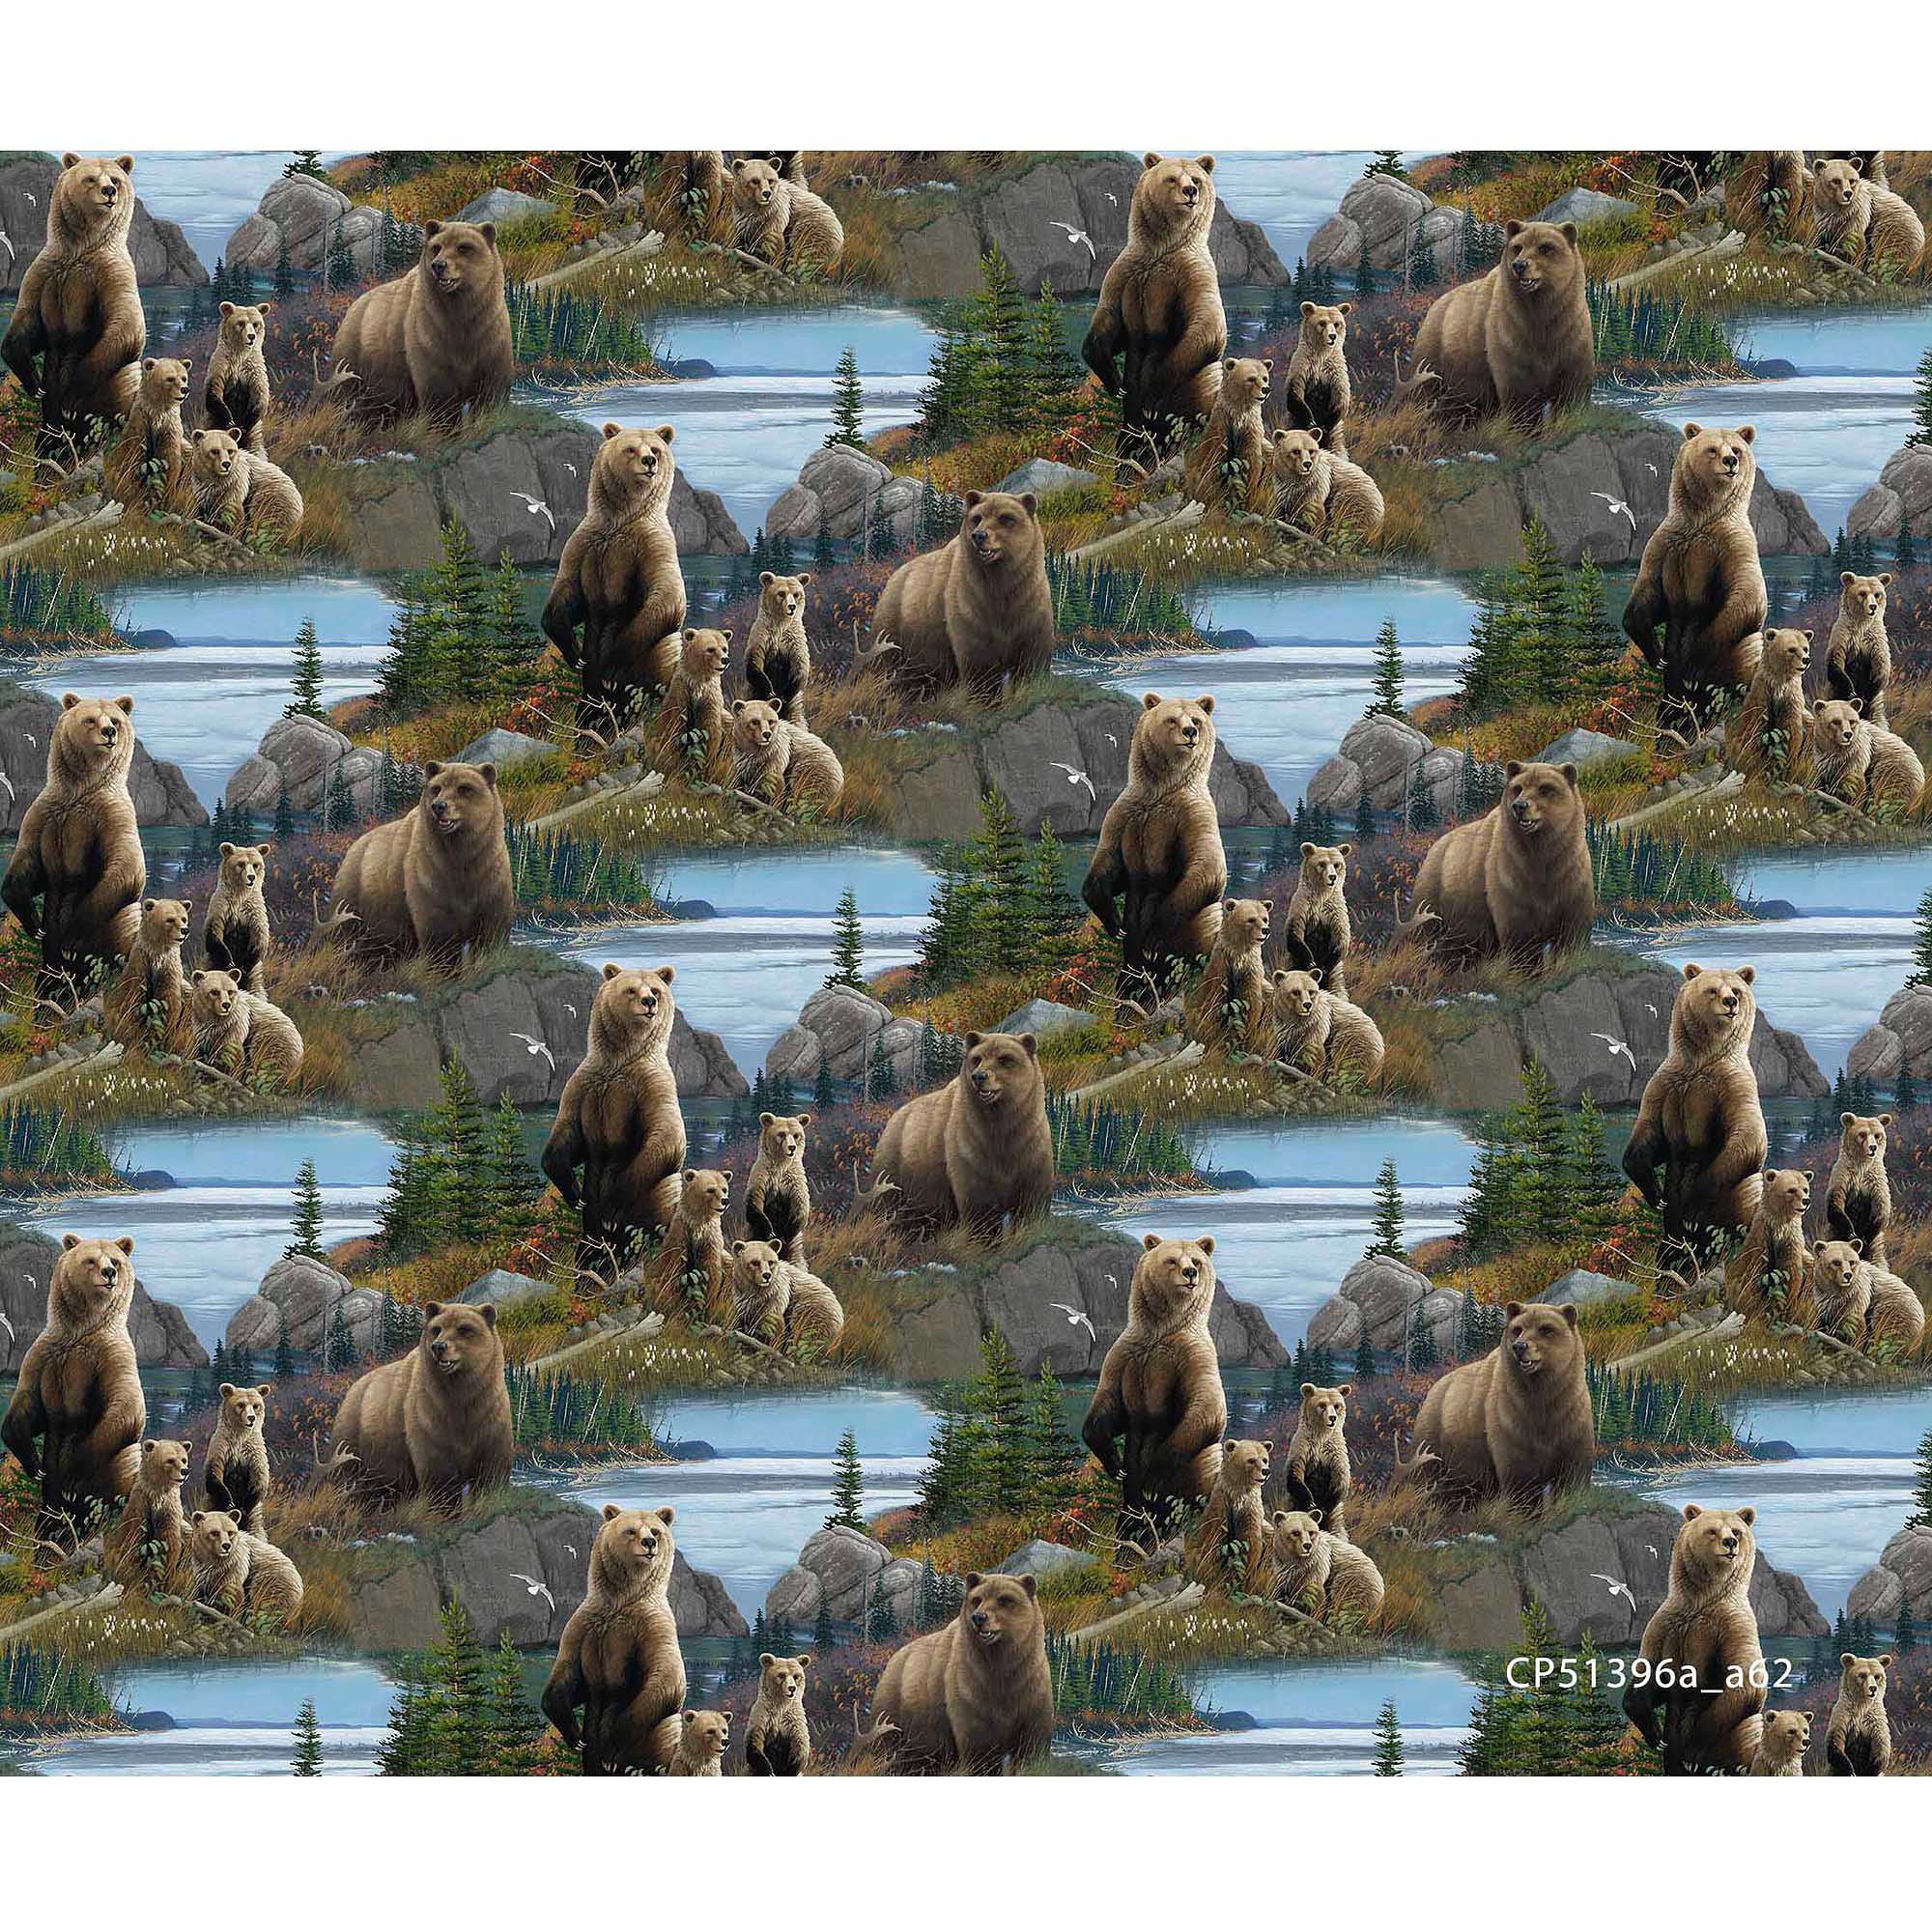 Springs Creative Wild Wings Scenics Fabric, Granger Lake, Multicolor